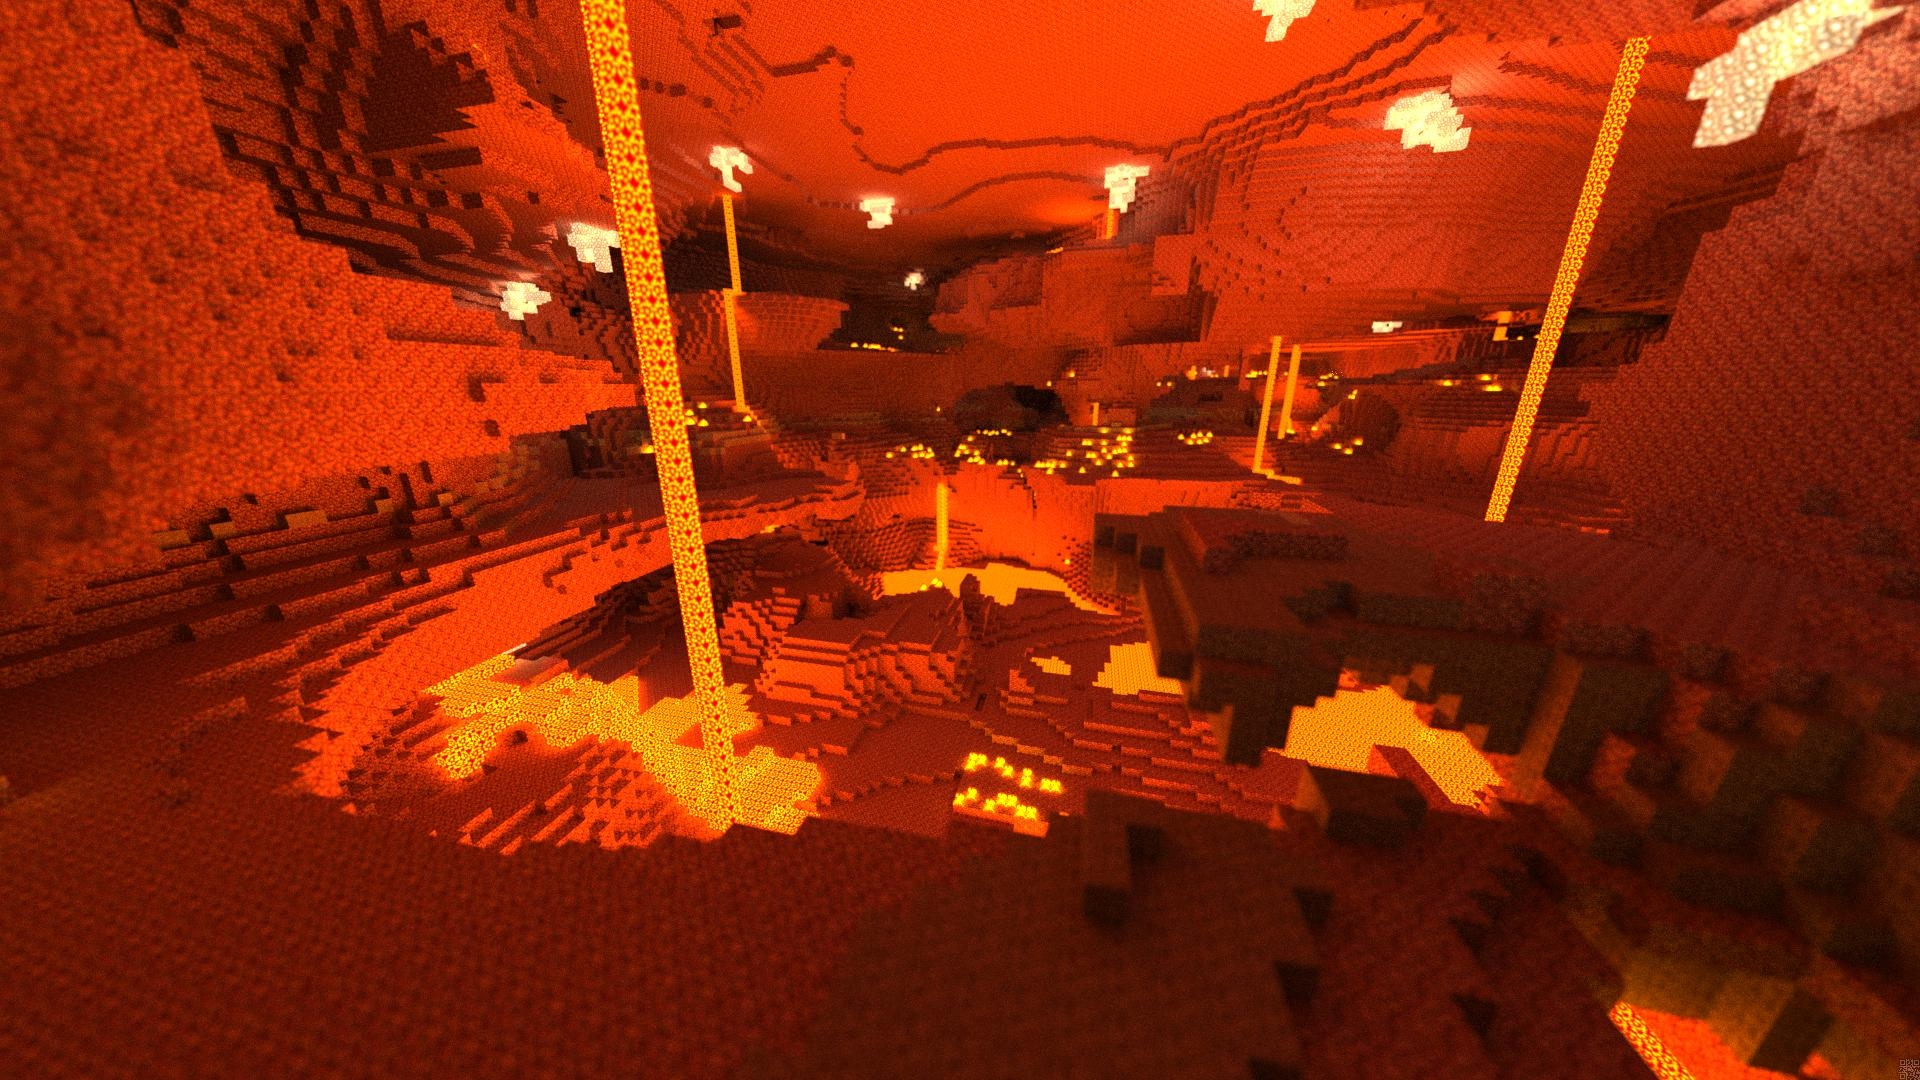 Minecraft Volcano Hd Wallpapers Space Elephant 1920x1080